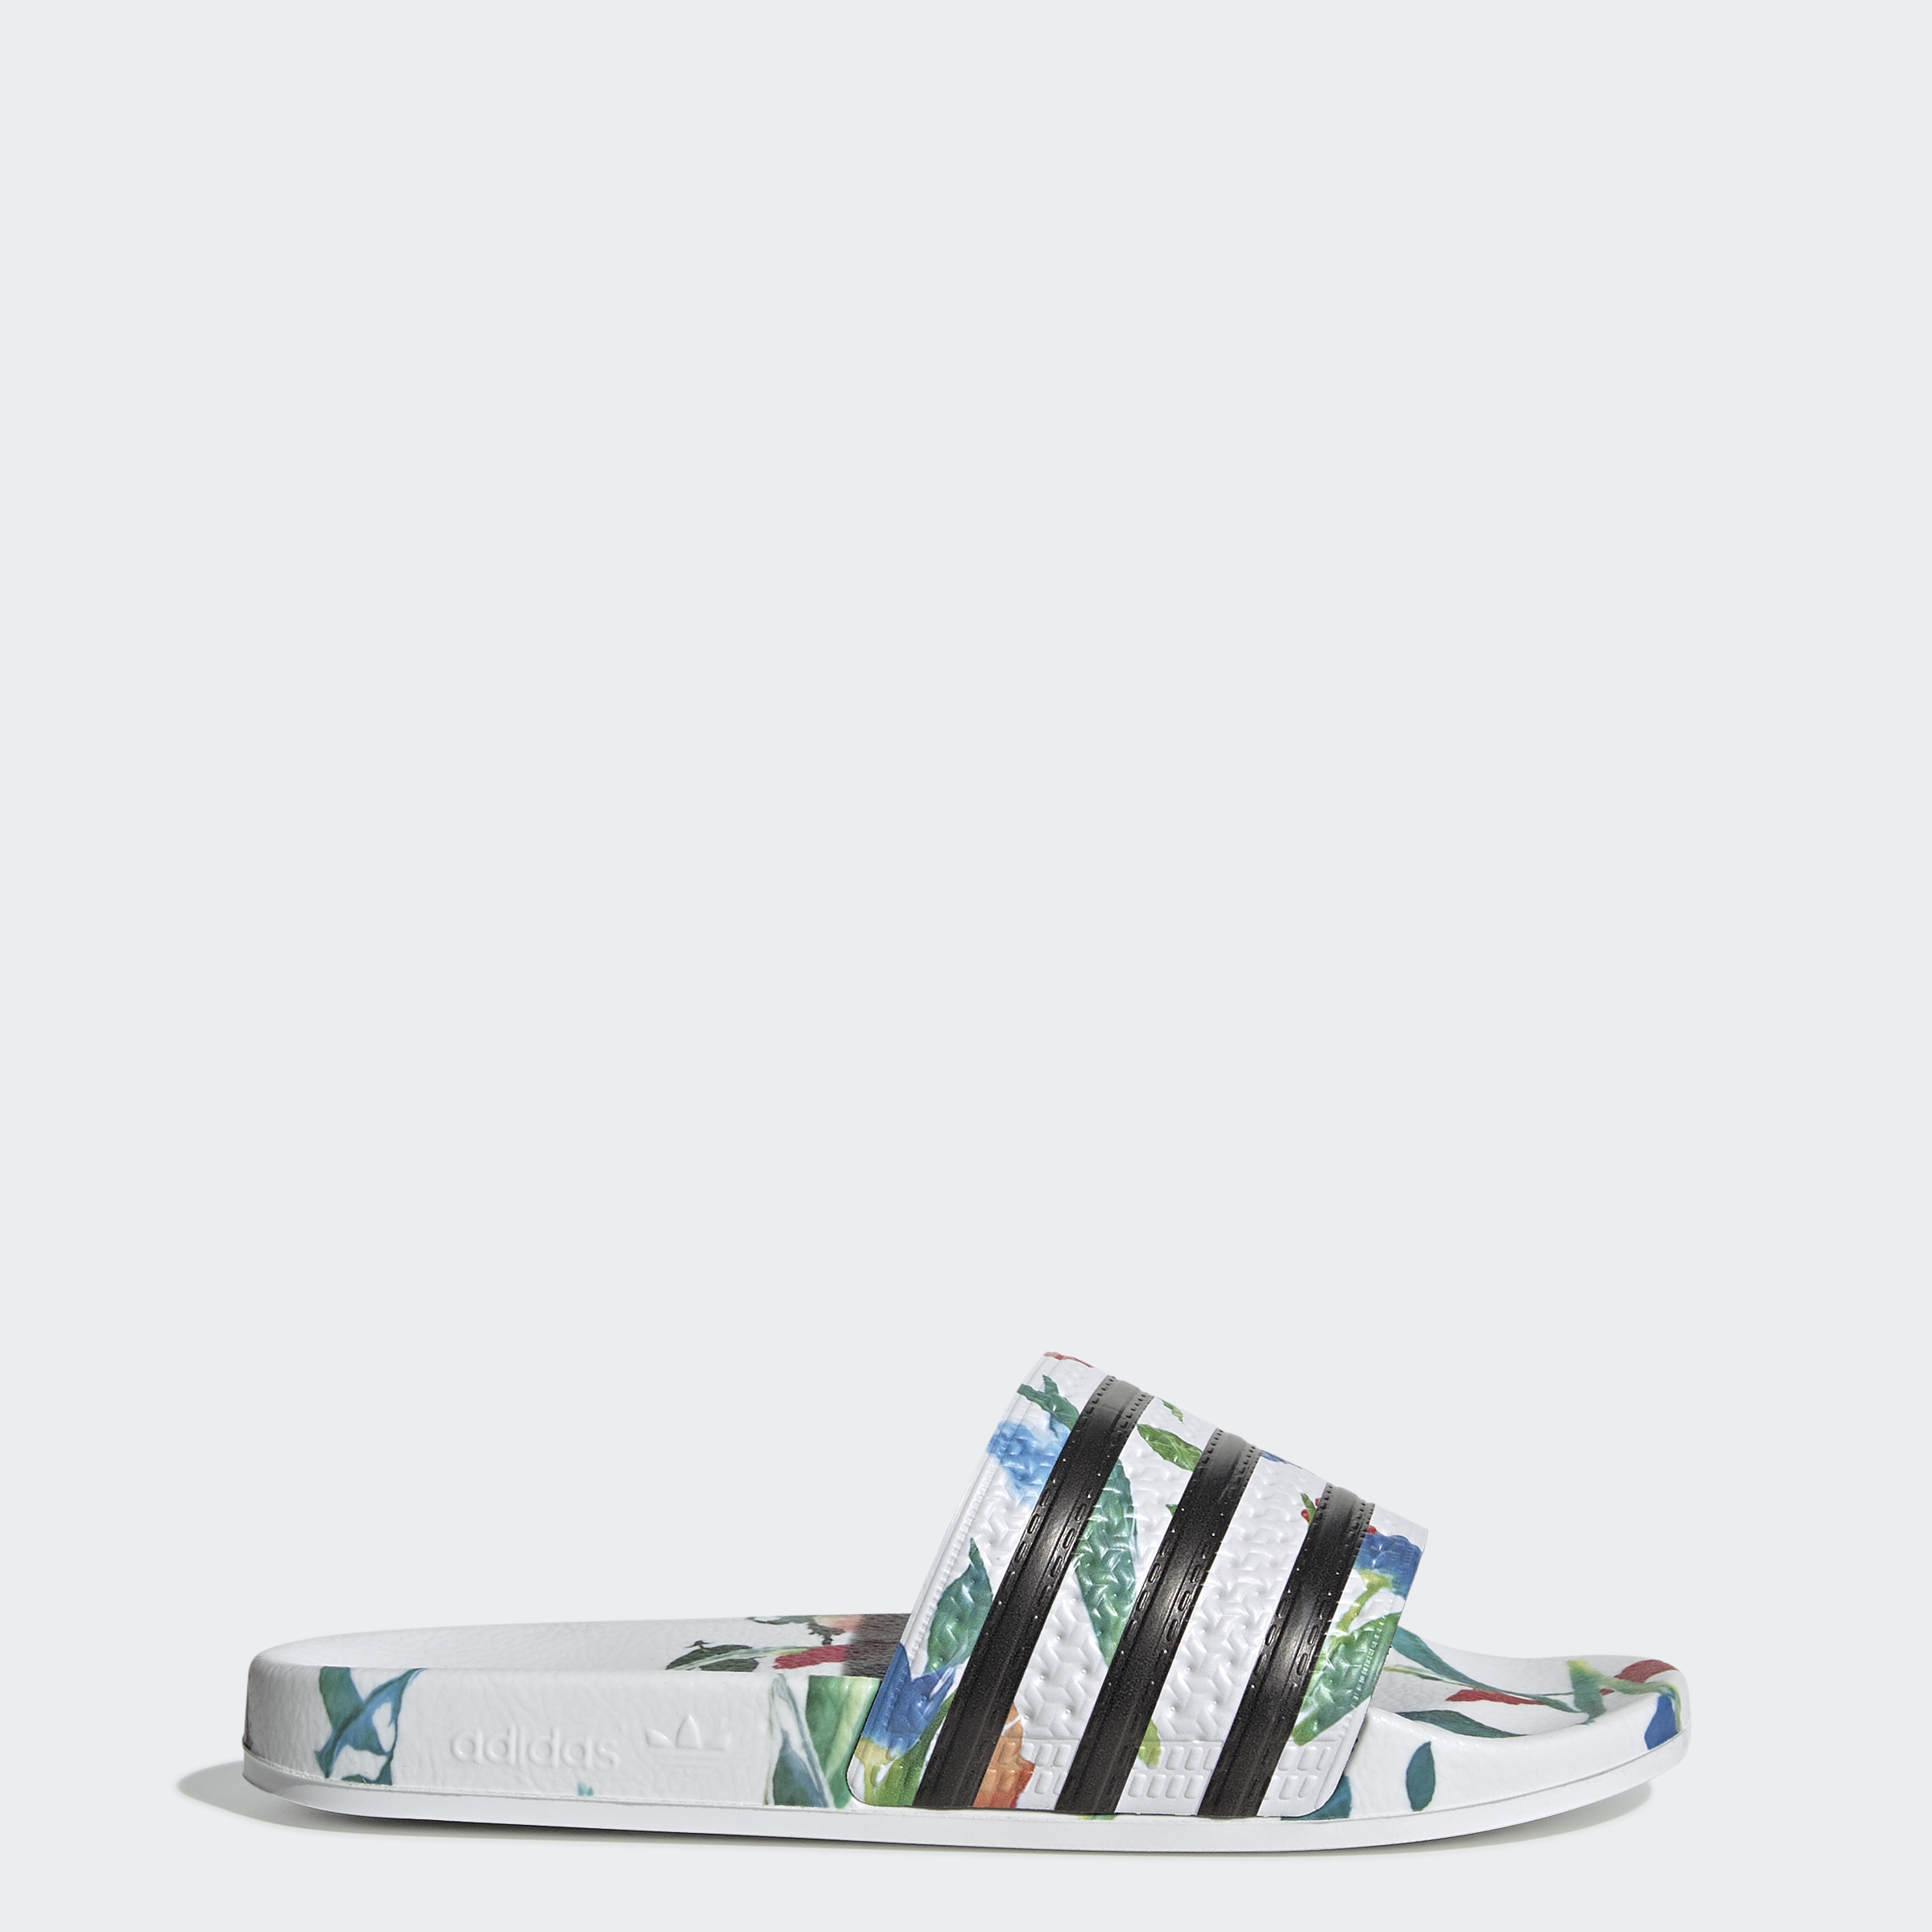 adidas-Originals-Adilette-Slides-Women-039-s thumbnail 37